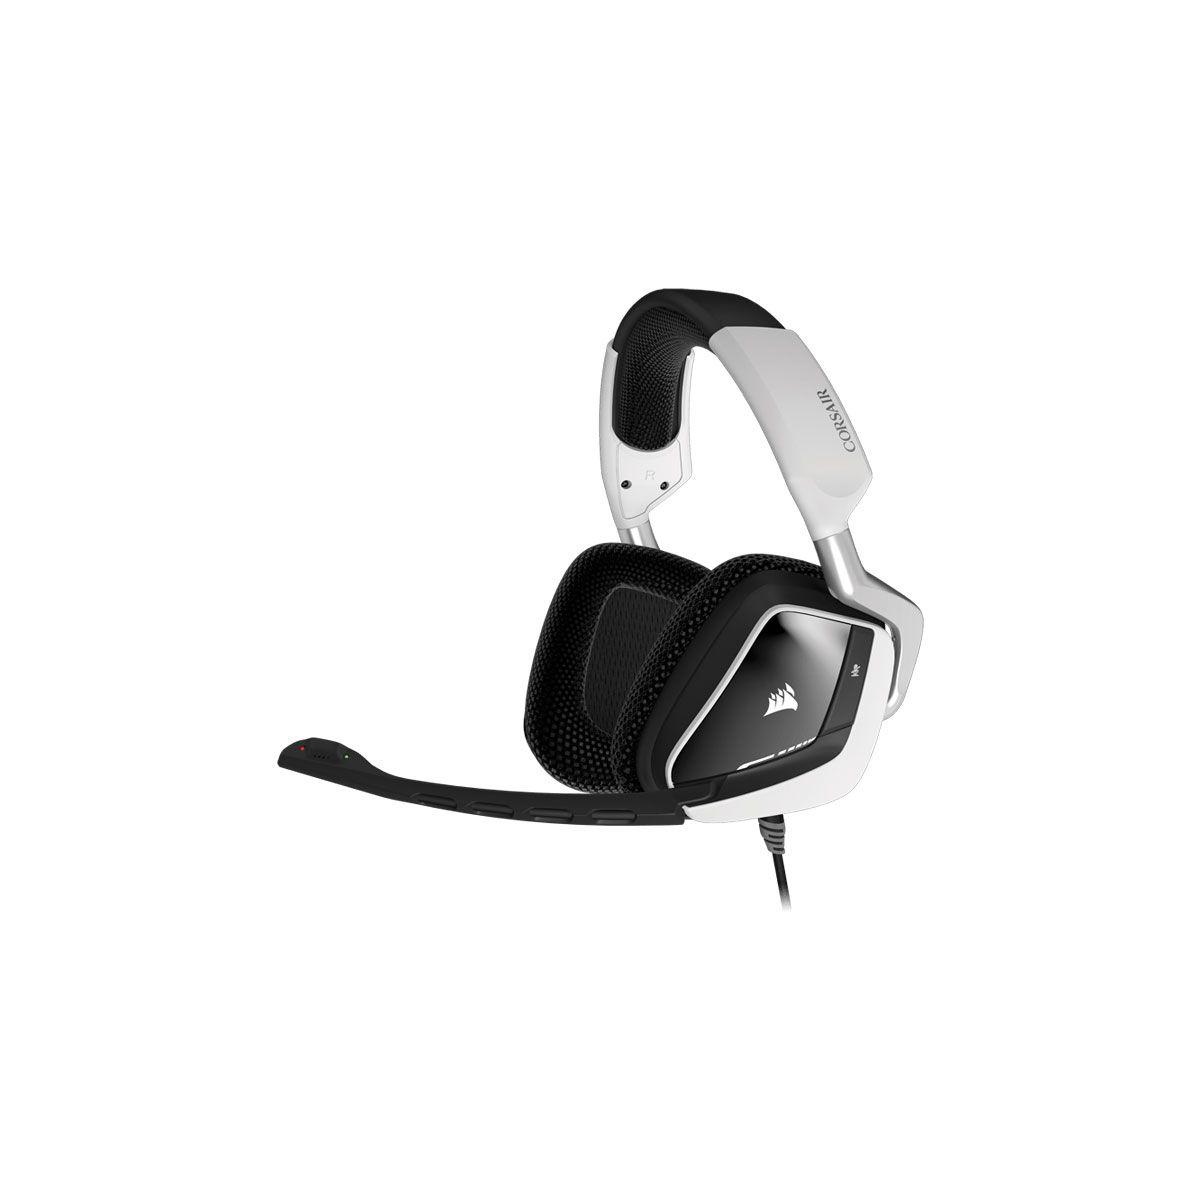 Casque micro gamer corsair void rgb usb dolby 7.1 blanc (photo)